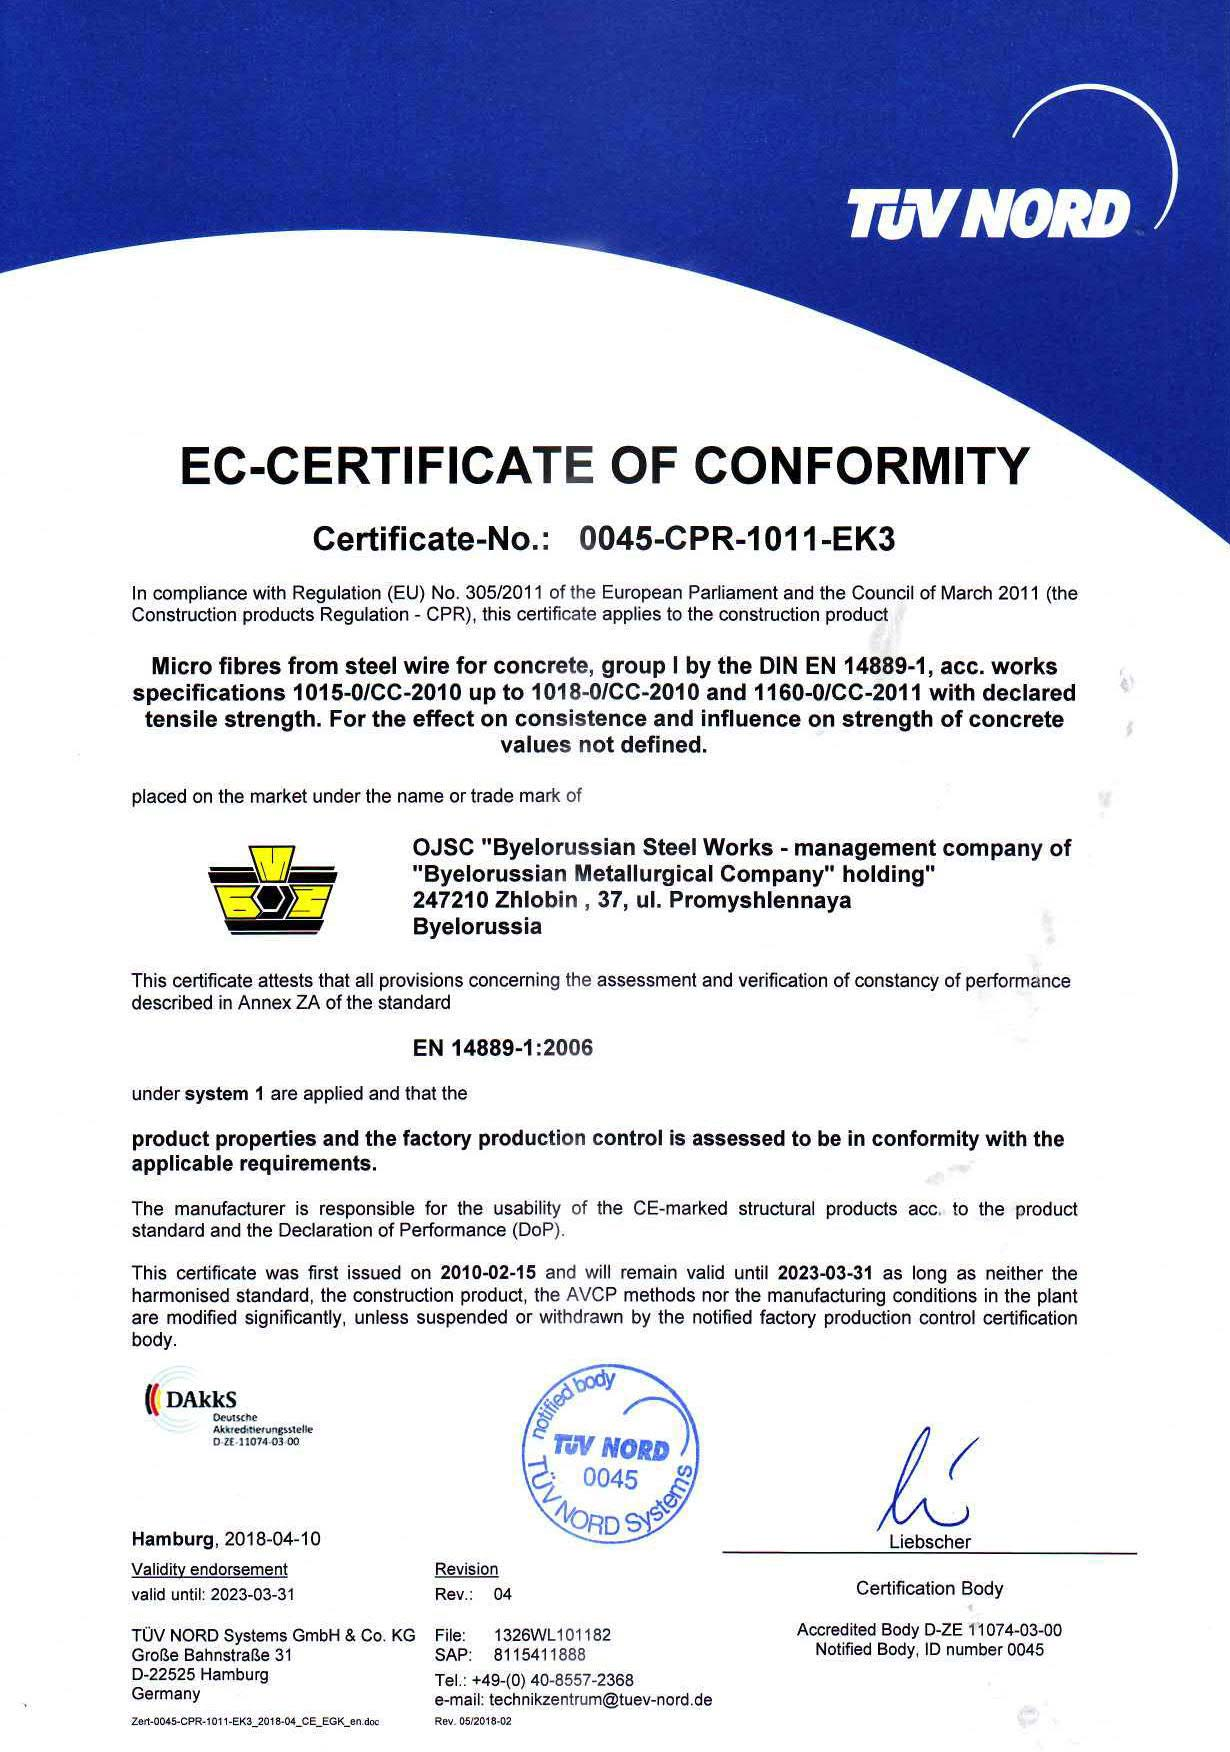 Certificate TUV NORD (Germany)No0045-CPR-1011-EK3 for production of steel microfiber for concrete according to the requirements of EN 14889-1:2006 and European building regulations 305/2011 (right to apply CE-mark).